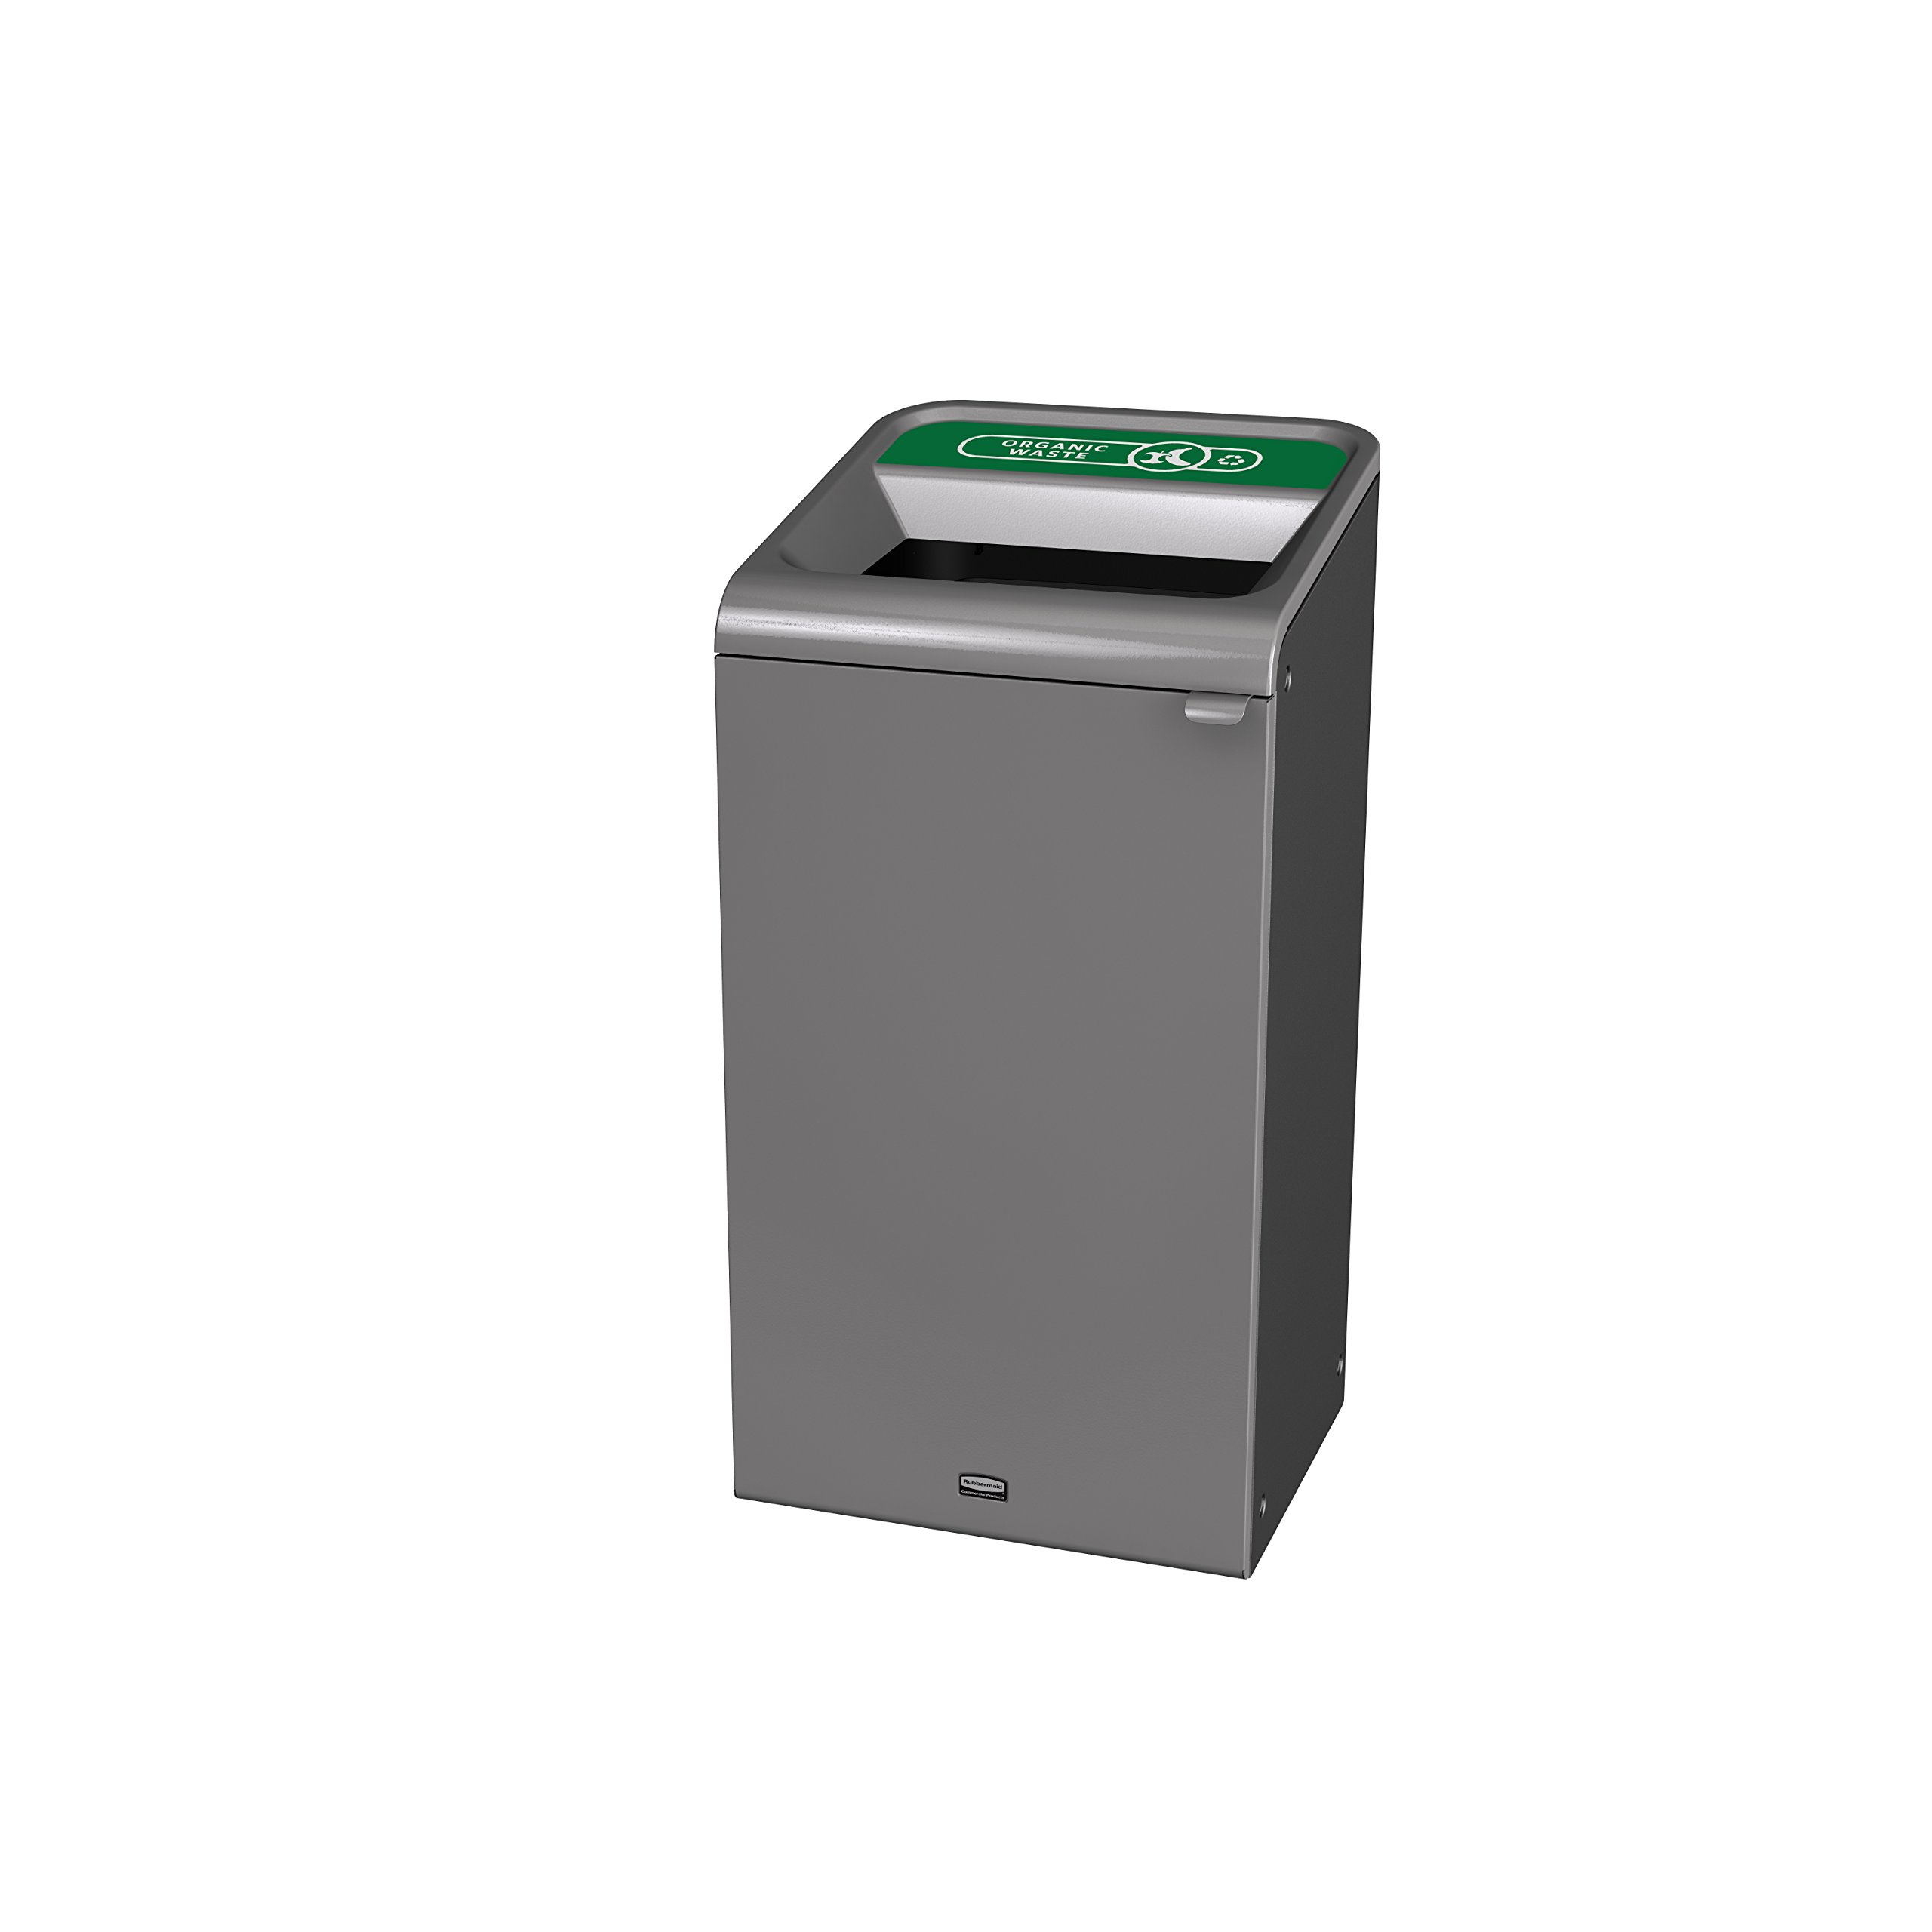 Rubbermaid Commercial Products 1961627 Configure Waste Receptacle, 23 gal, Organic Waste Trash Can, Grey Stenni